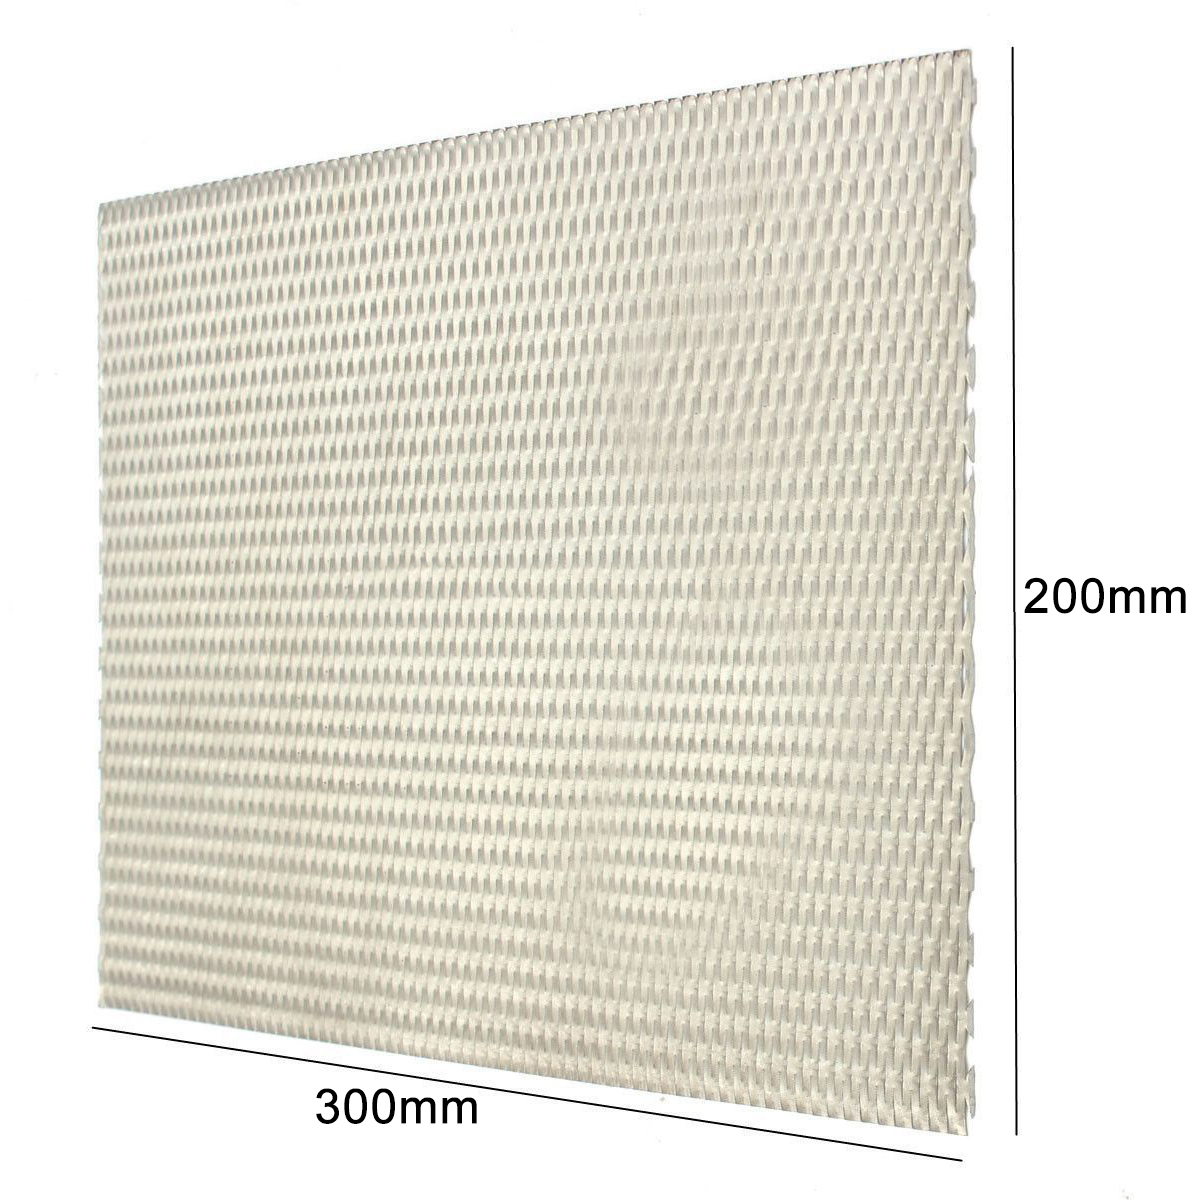 1pc Mayitr Practical Metal Titanium Mesh Sheet Heat Corrosion Resistance Silver Perforated Expanded Plate 200mm*300mm*0.5mm 1pc recycled metal titanium mesh sheet with corrosion resistance 50mmx165mm electrode for electrolysis